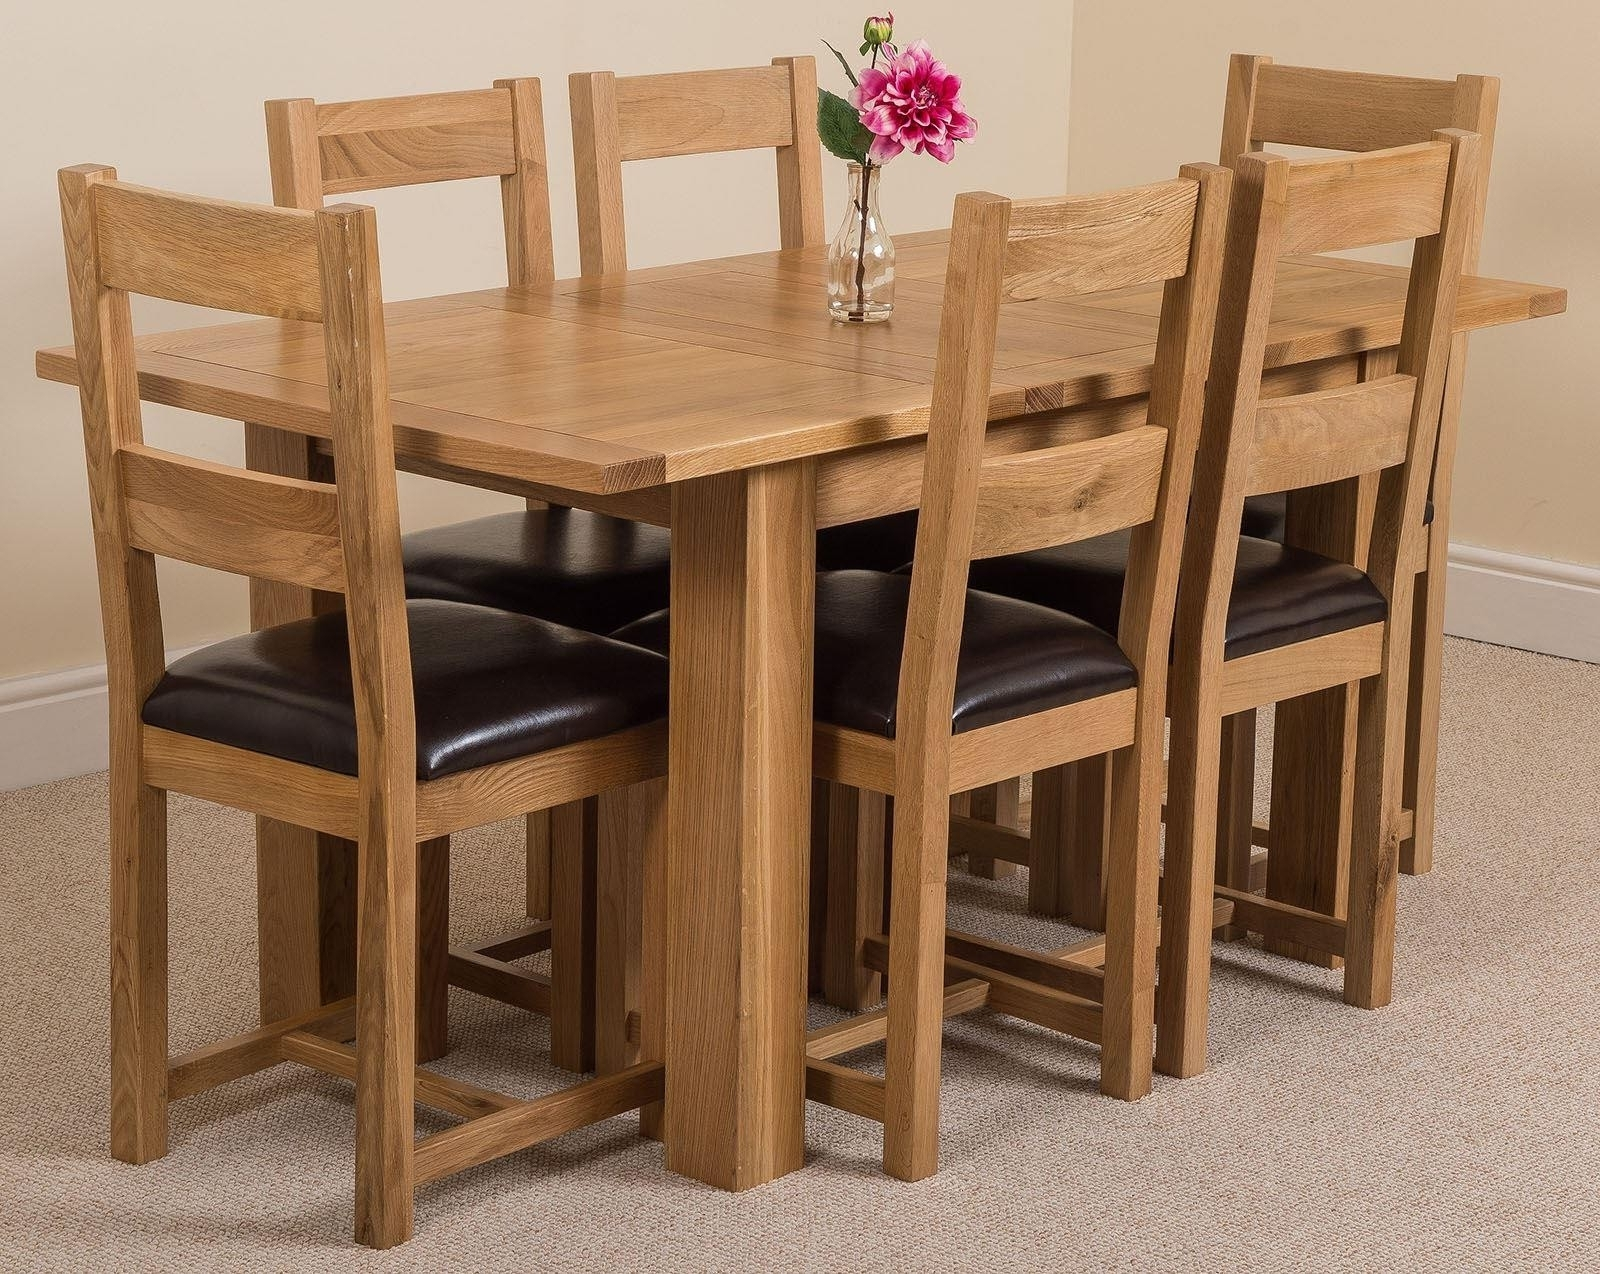 Oak Furniture King With Solid Oak Dining Tables And 6 Chairs (View 12 of 25)